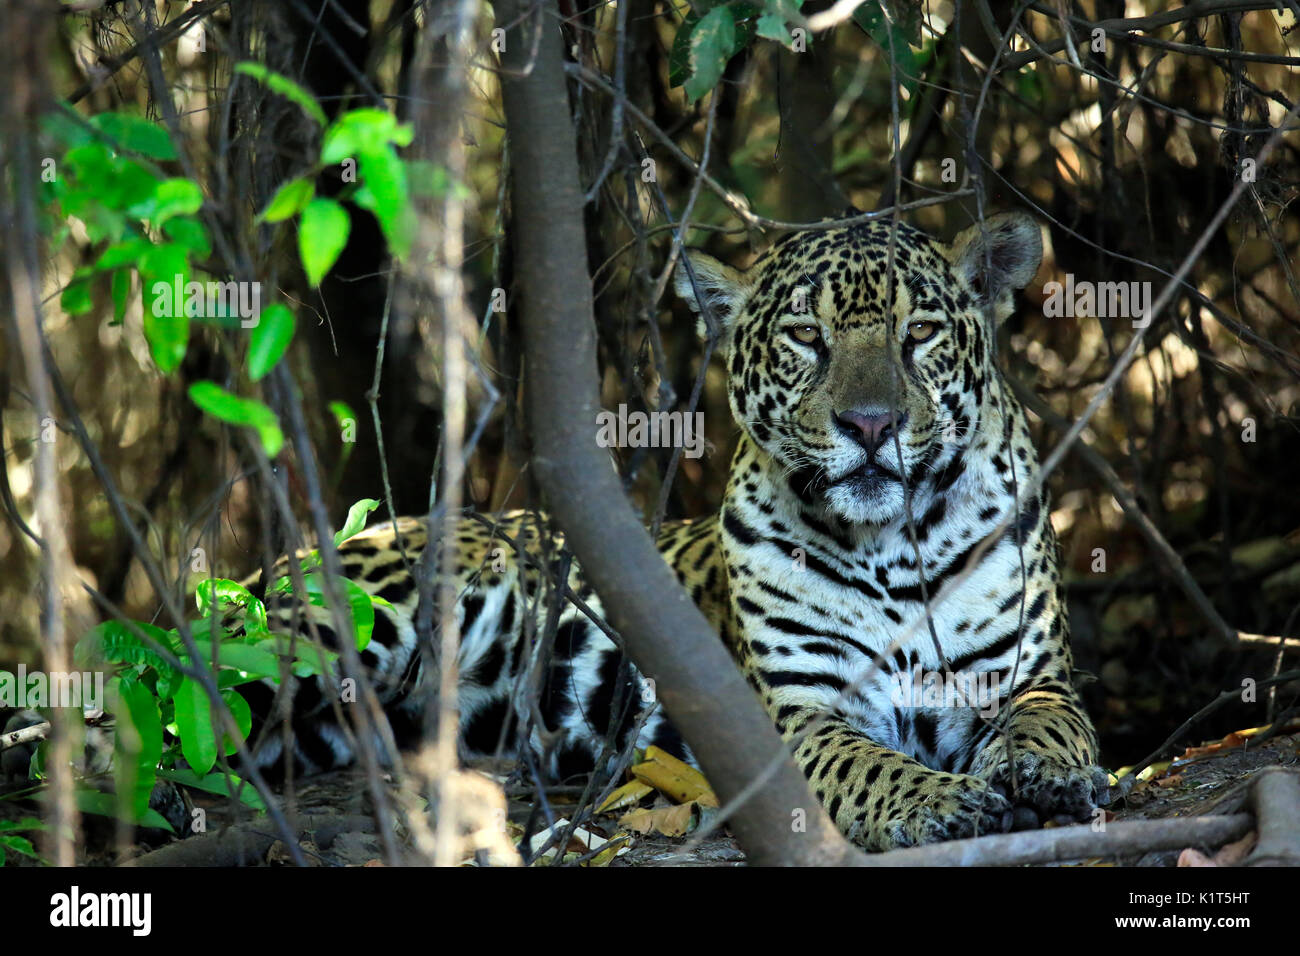 Jaguar Lying on the Ground, Looking into the Camera. Pantanal, Brazil - Stock Image